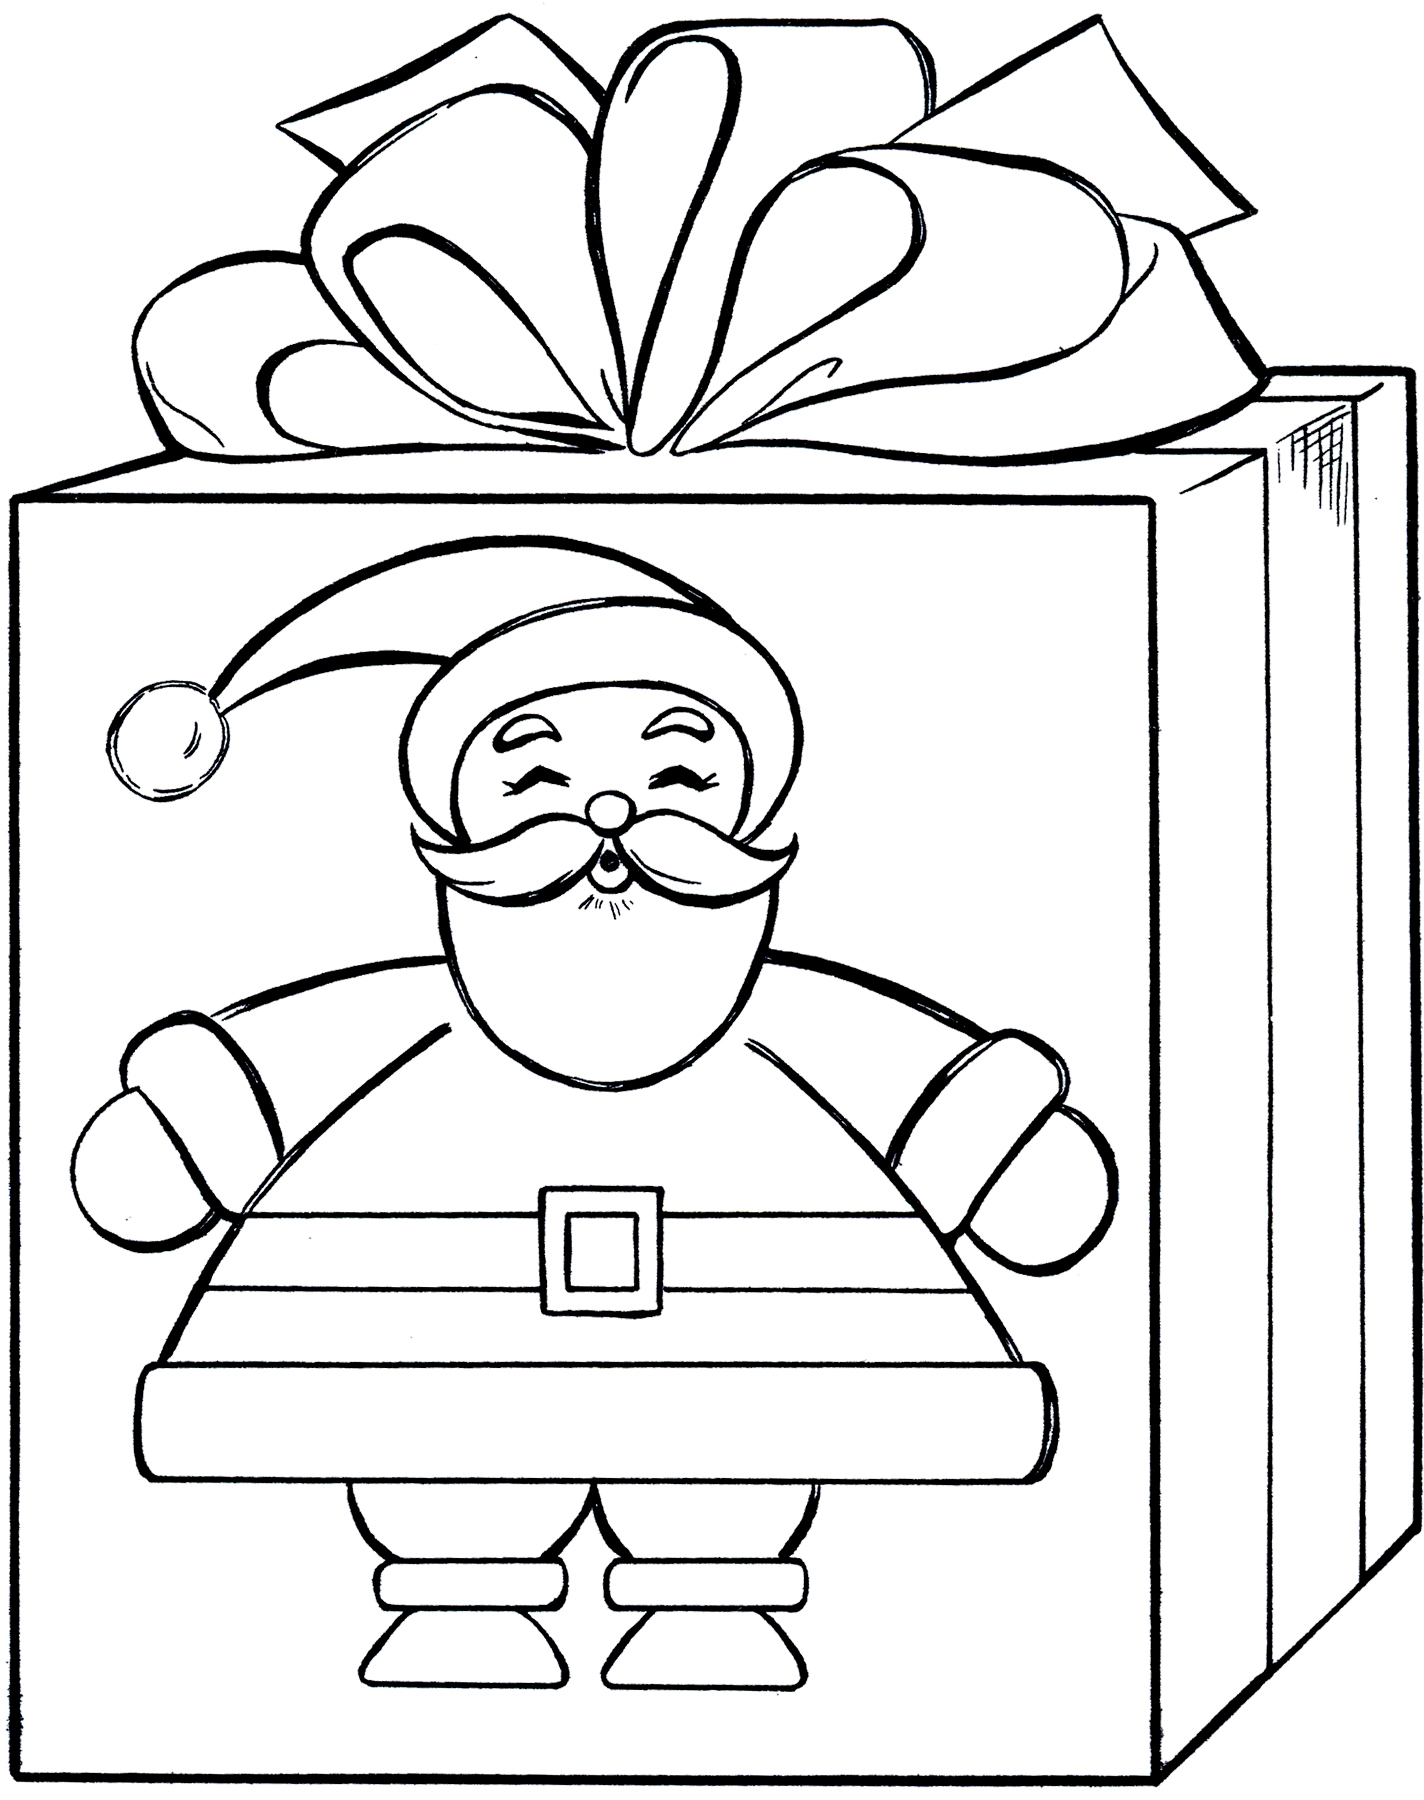 Santa Coloring Clipart With Gift Graphics Illustrations Free Download On